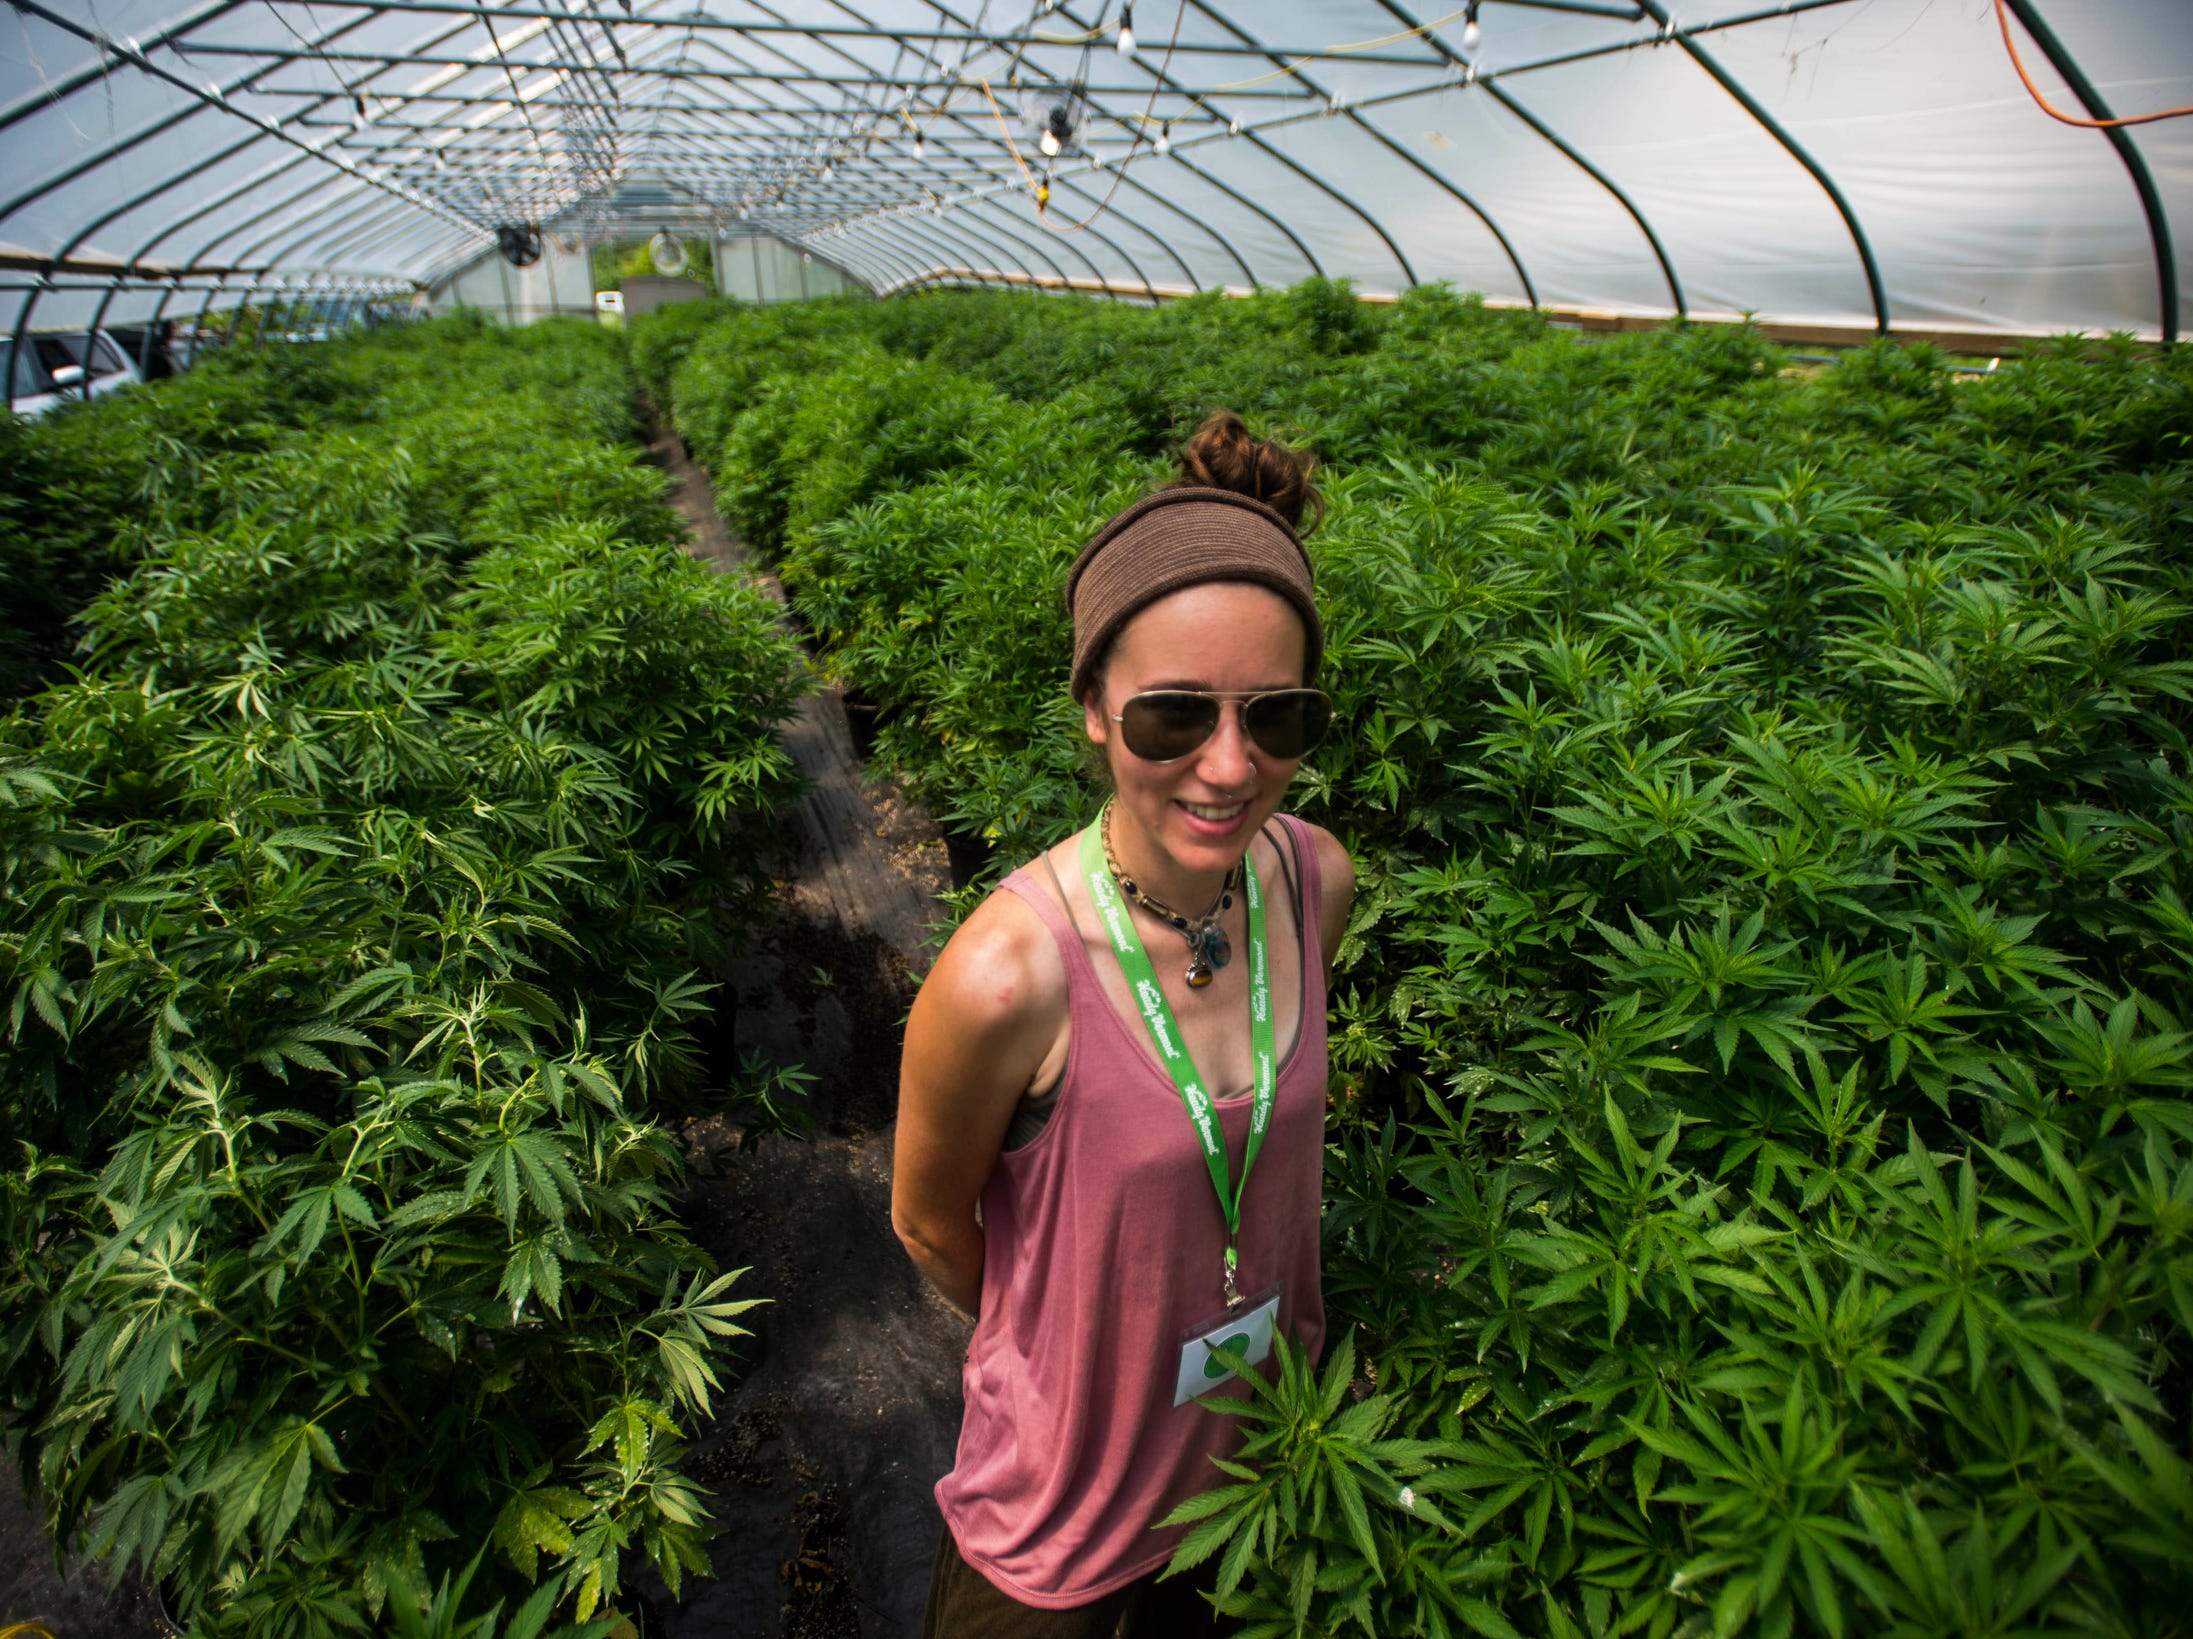 Corey Decker, with Northern Roots Nursery and Brand Ambassador for hemp-inspired women's clothing company Mary Maven VT, shows off Northern Root's CBD hemp green house at Heady Vermont's legalization celebration at Willow Farm in Johnson, VT, on  July 1, 2018, the first day or marijuana legalization in Vermont.  The FDA also approved the use of a drug derived from marijuana for the first time Monday, giving the go ahead to treat two rare forms of epilepsy with the compound cannabidiol, also known as CBD, found in hemp and marijuana.